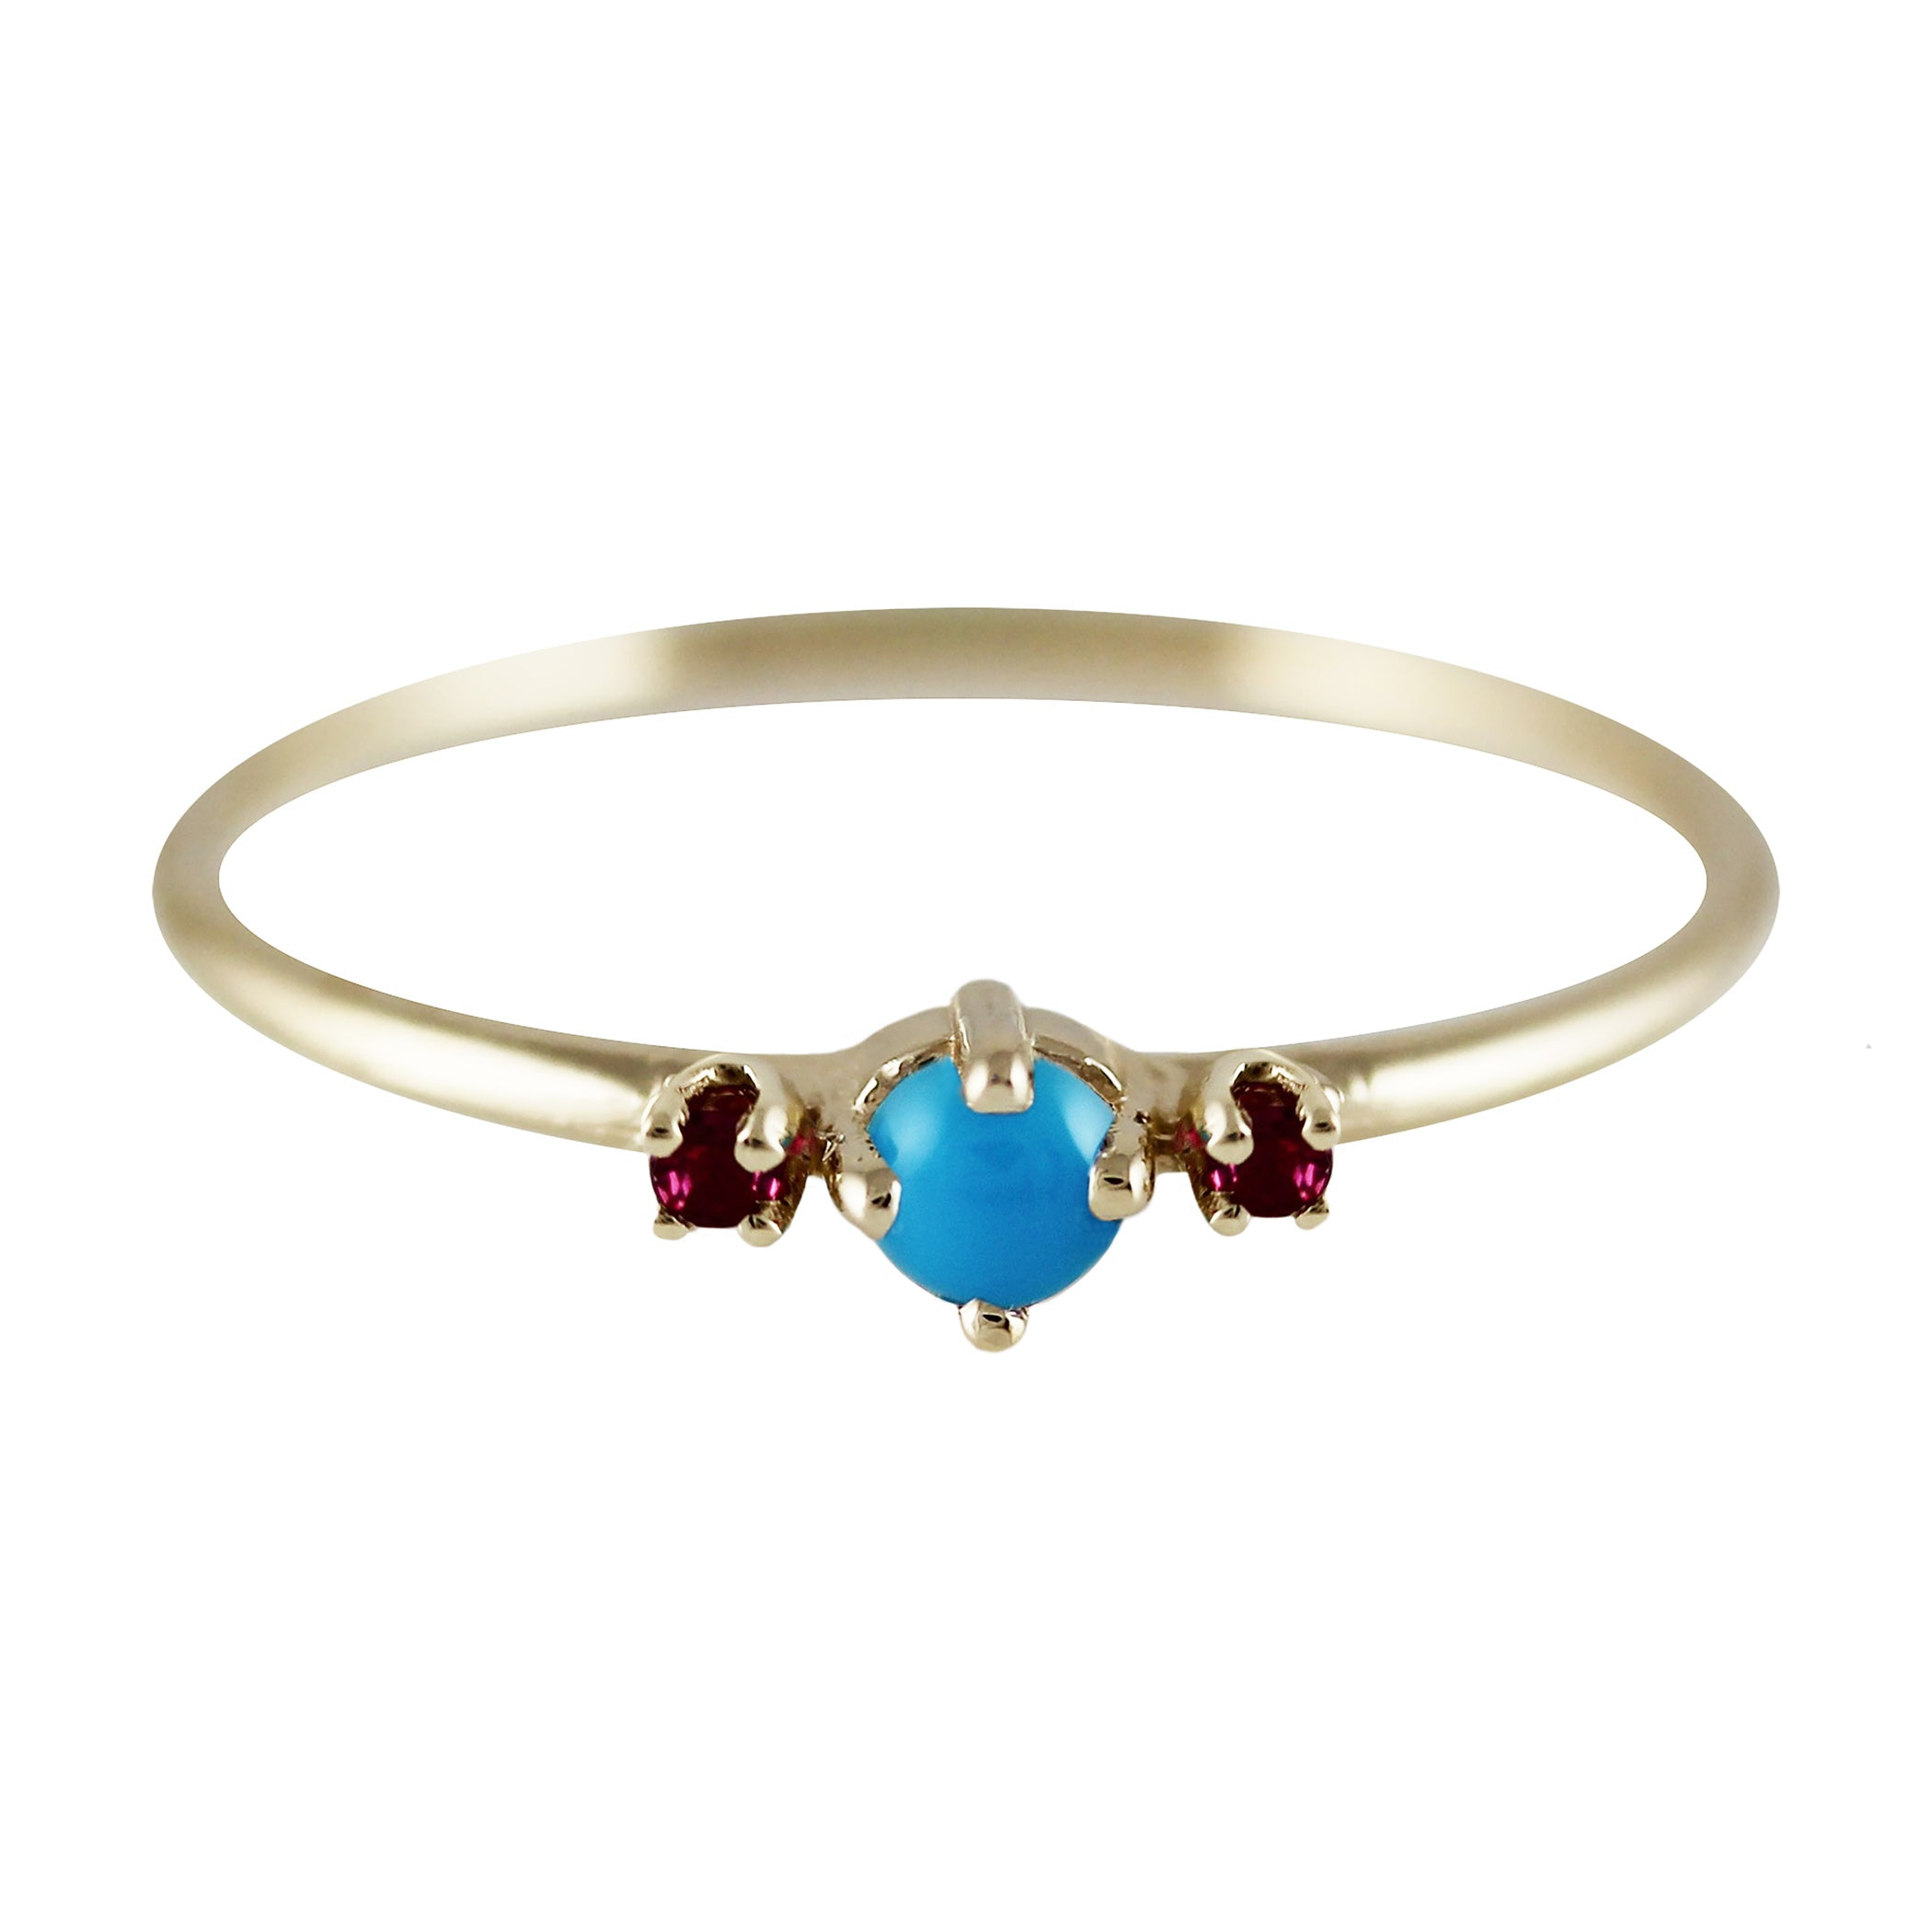 THEA TURQUOISE WITH RUBIES RING